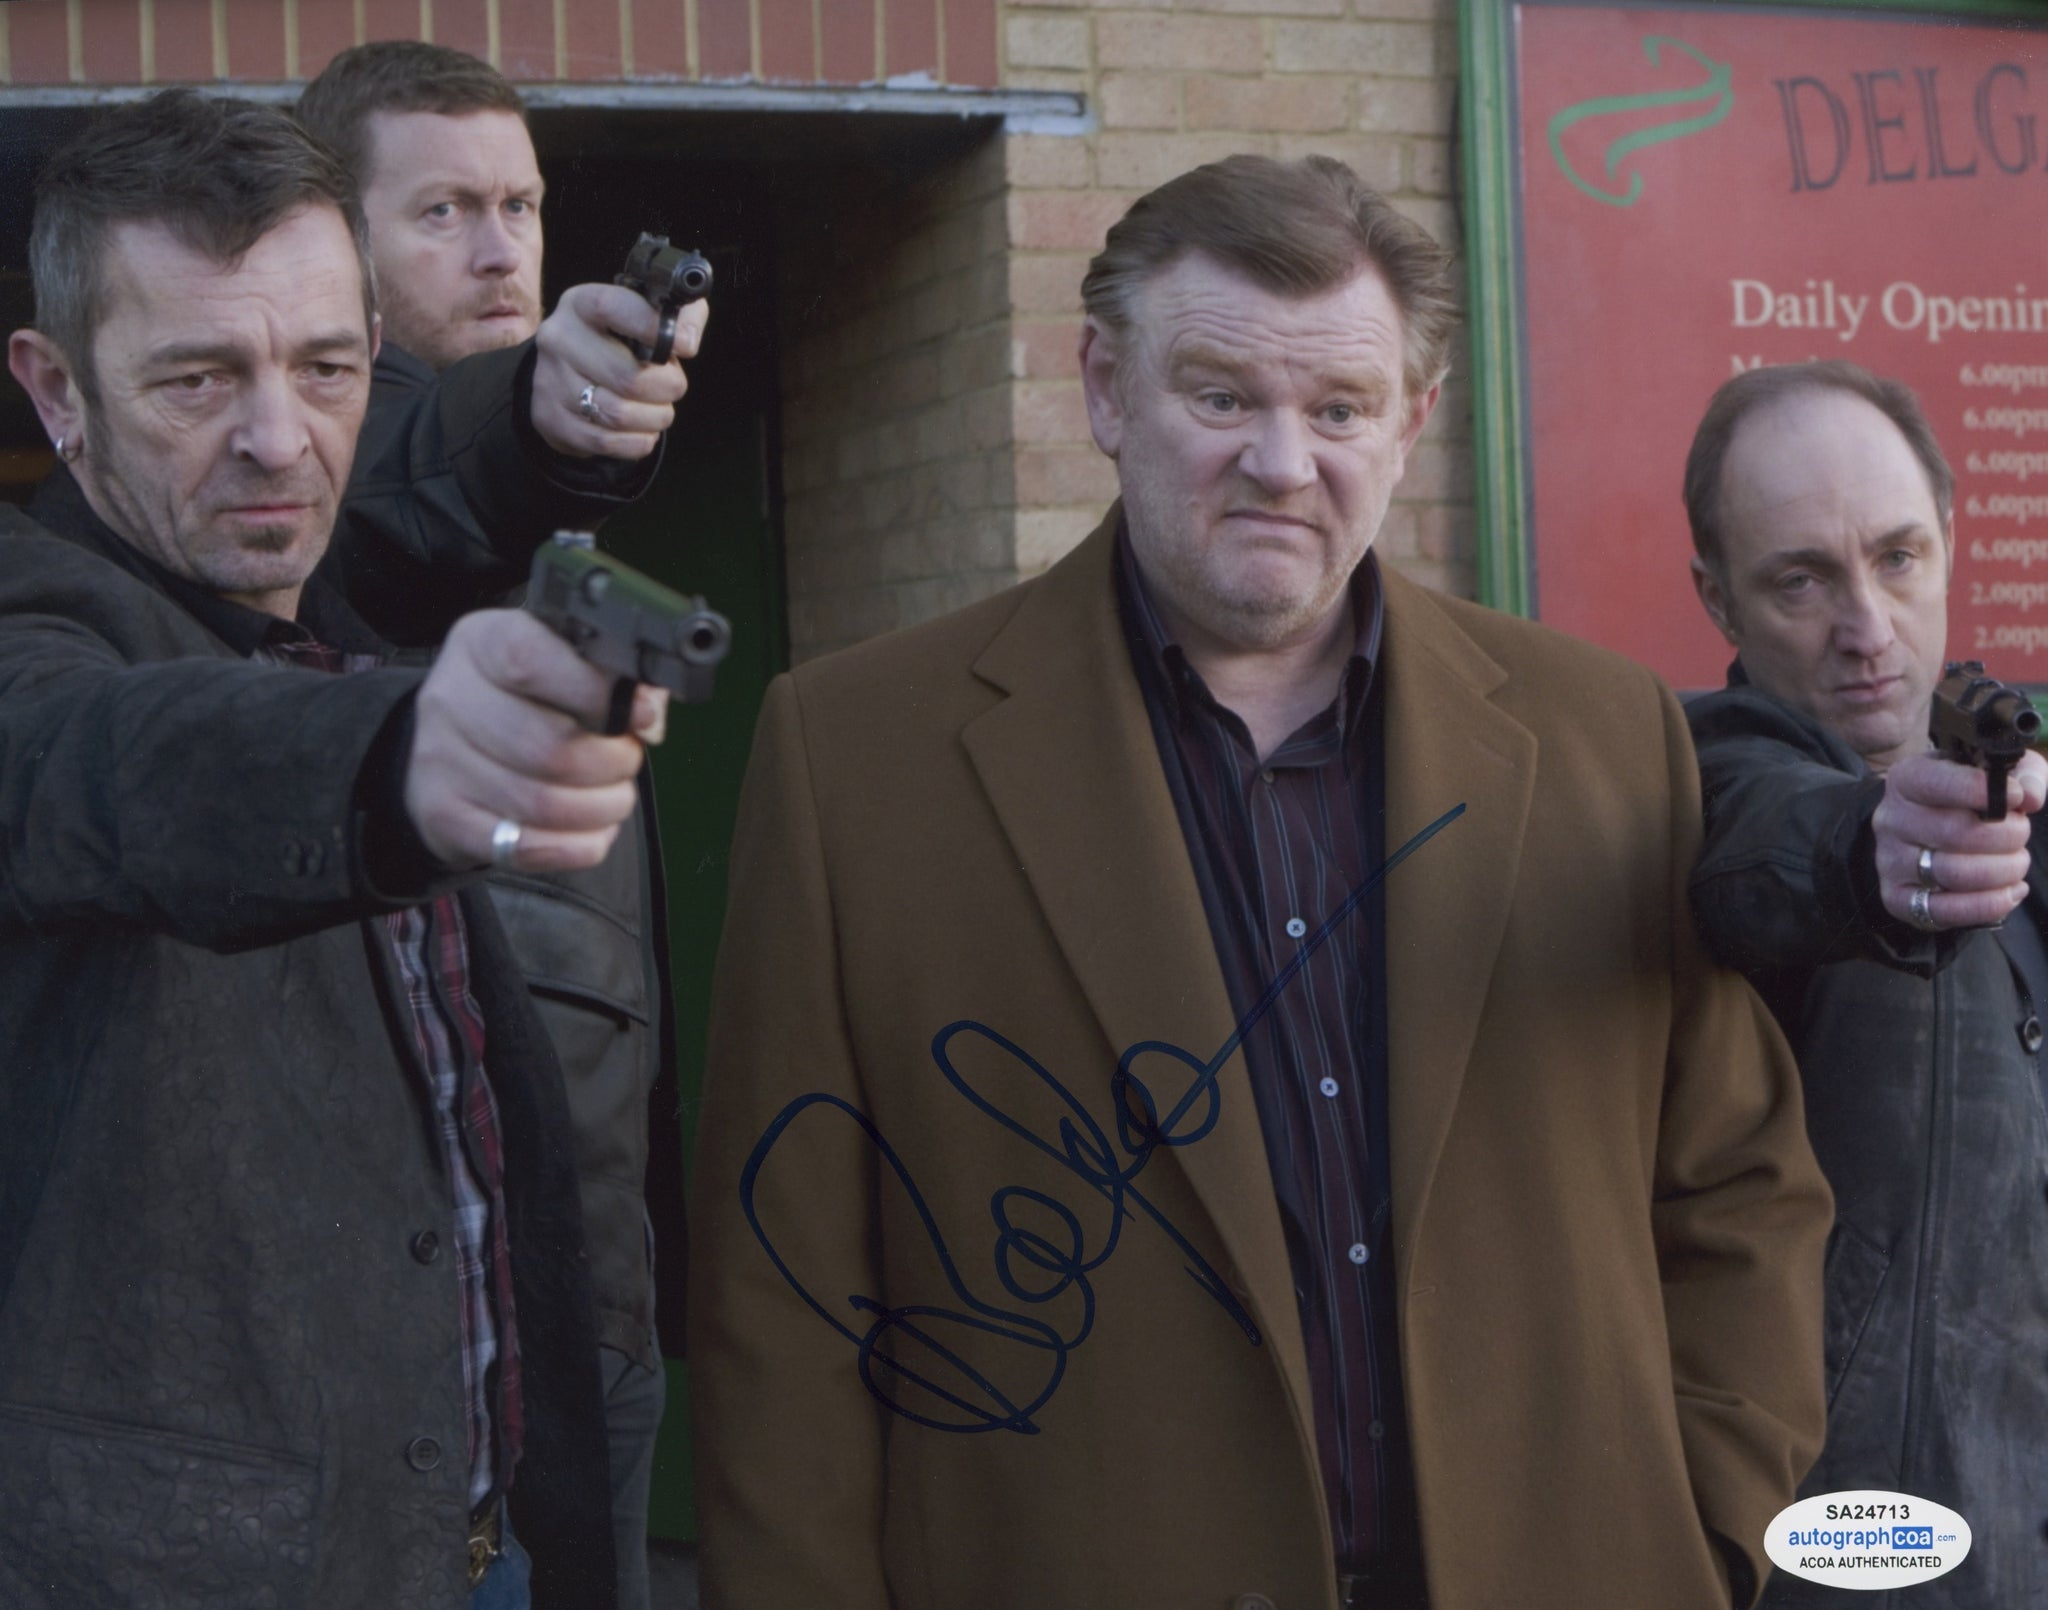 Brendan Gleeson In Bruges Signed Autograph ACOA Photo #6 - Outlaw Hobbies Authentic Autographs